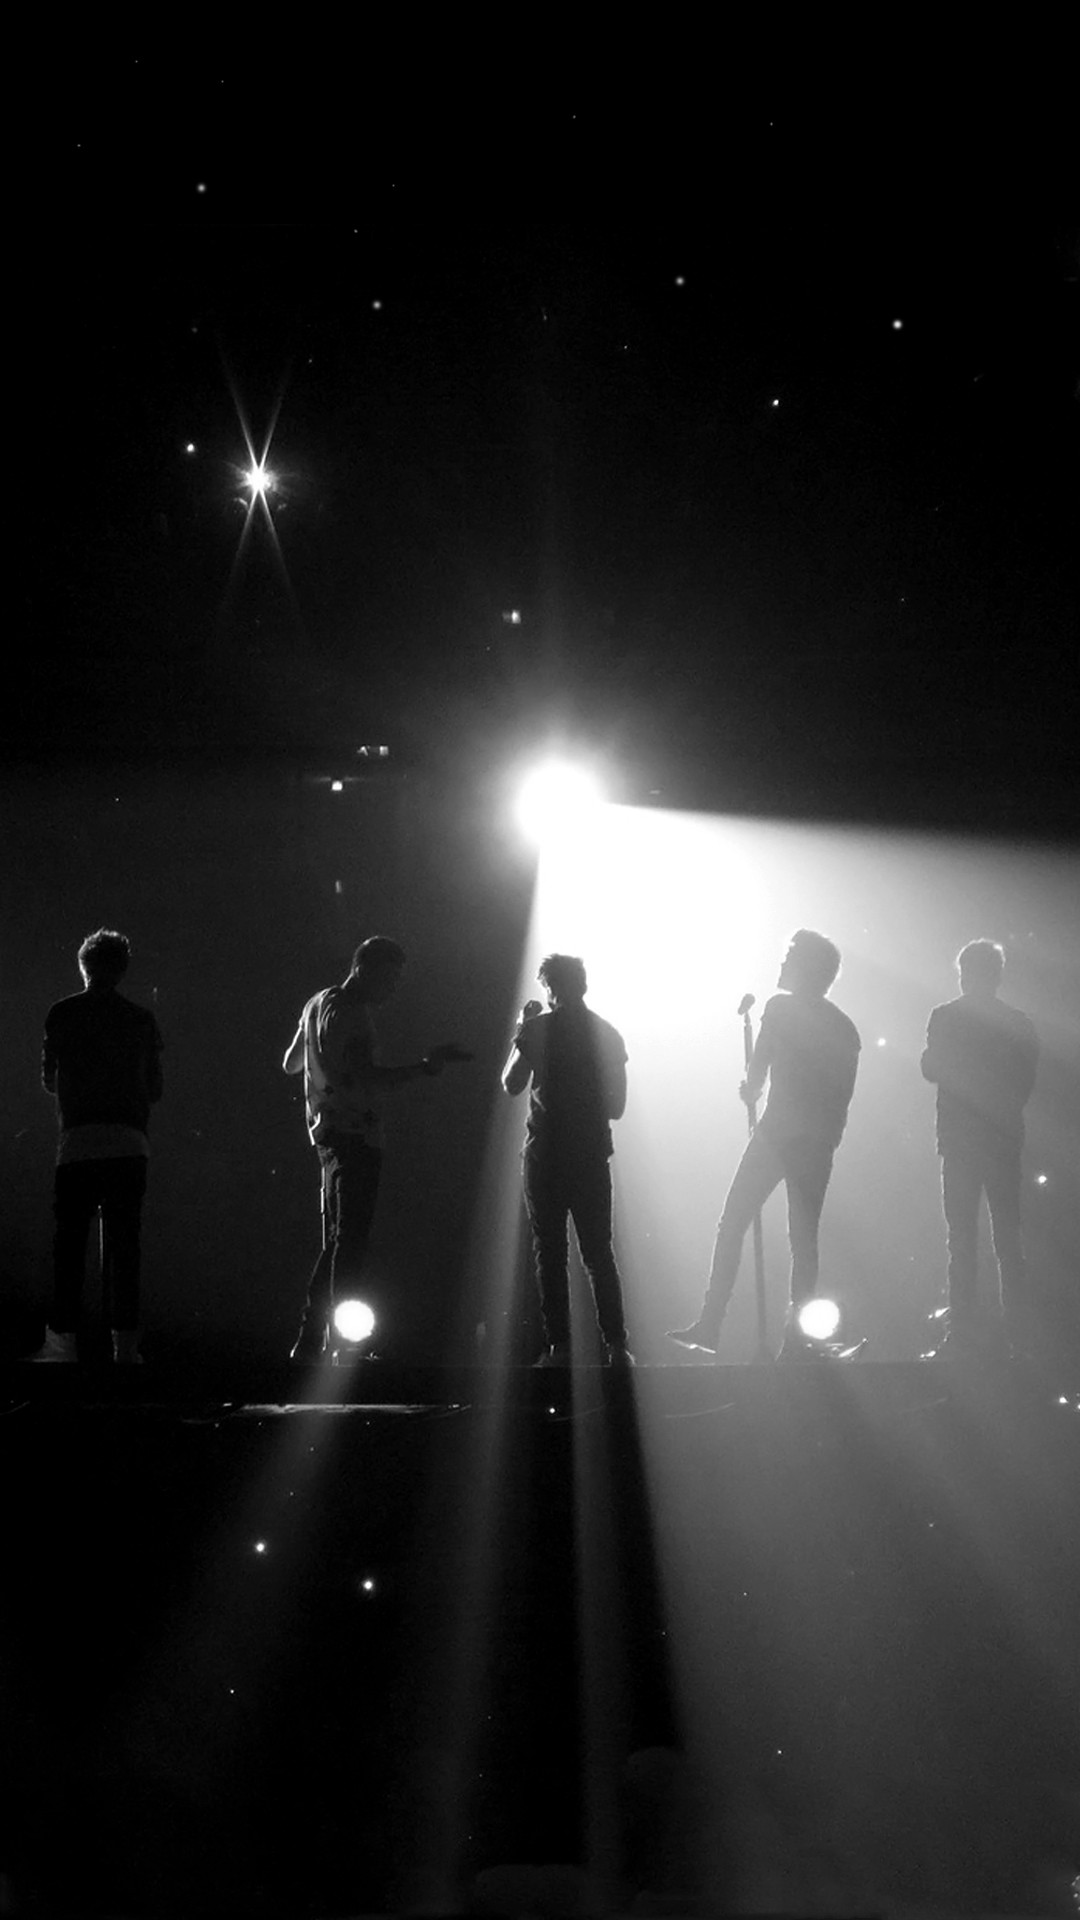 One Direction Iphone Wallpaper 71 Images